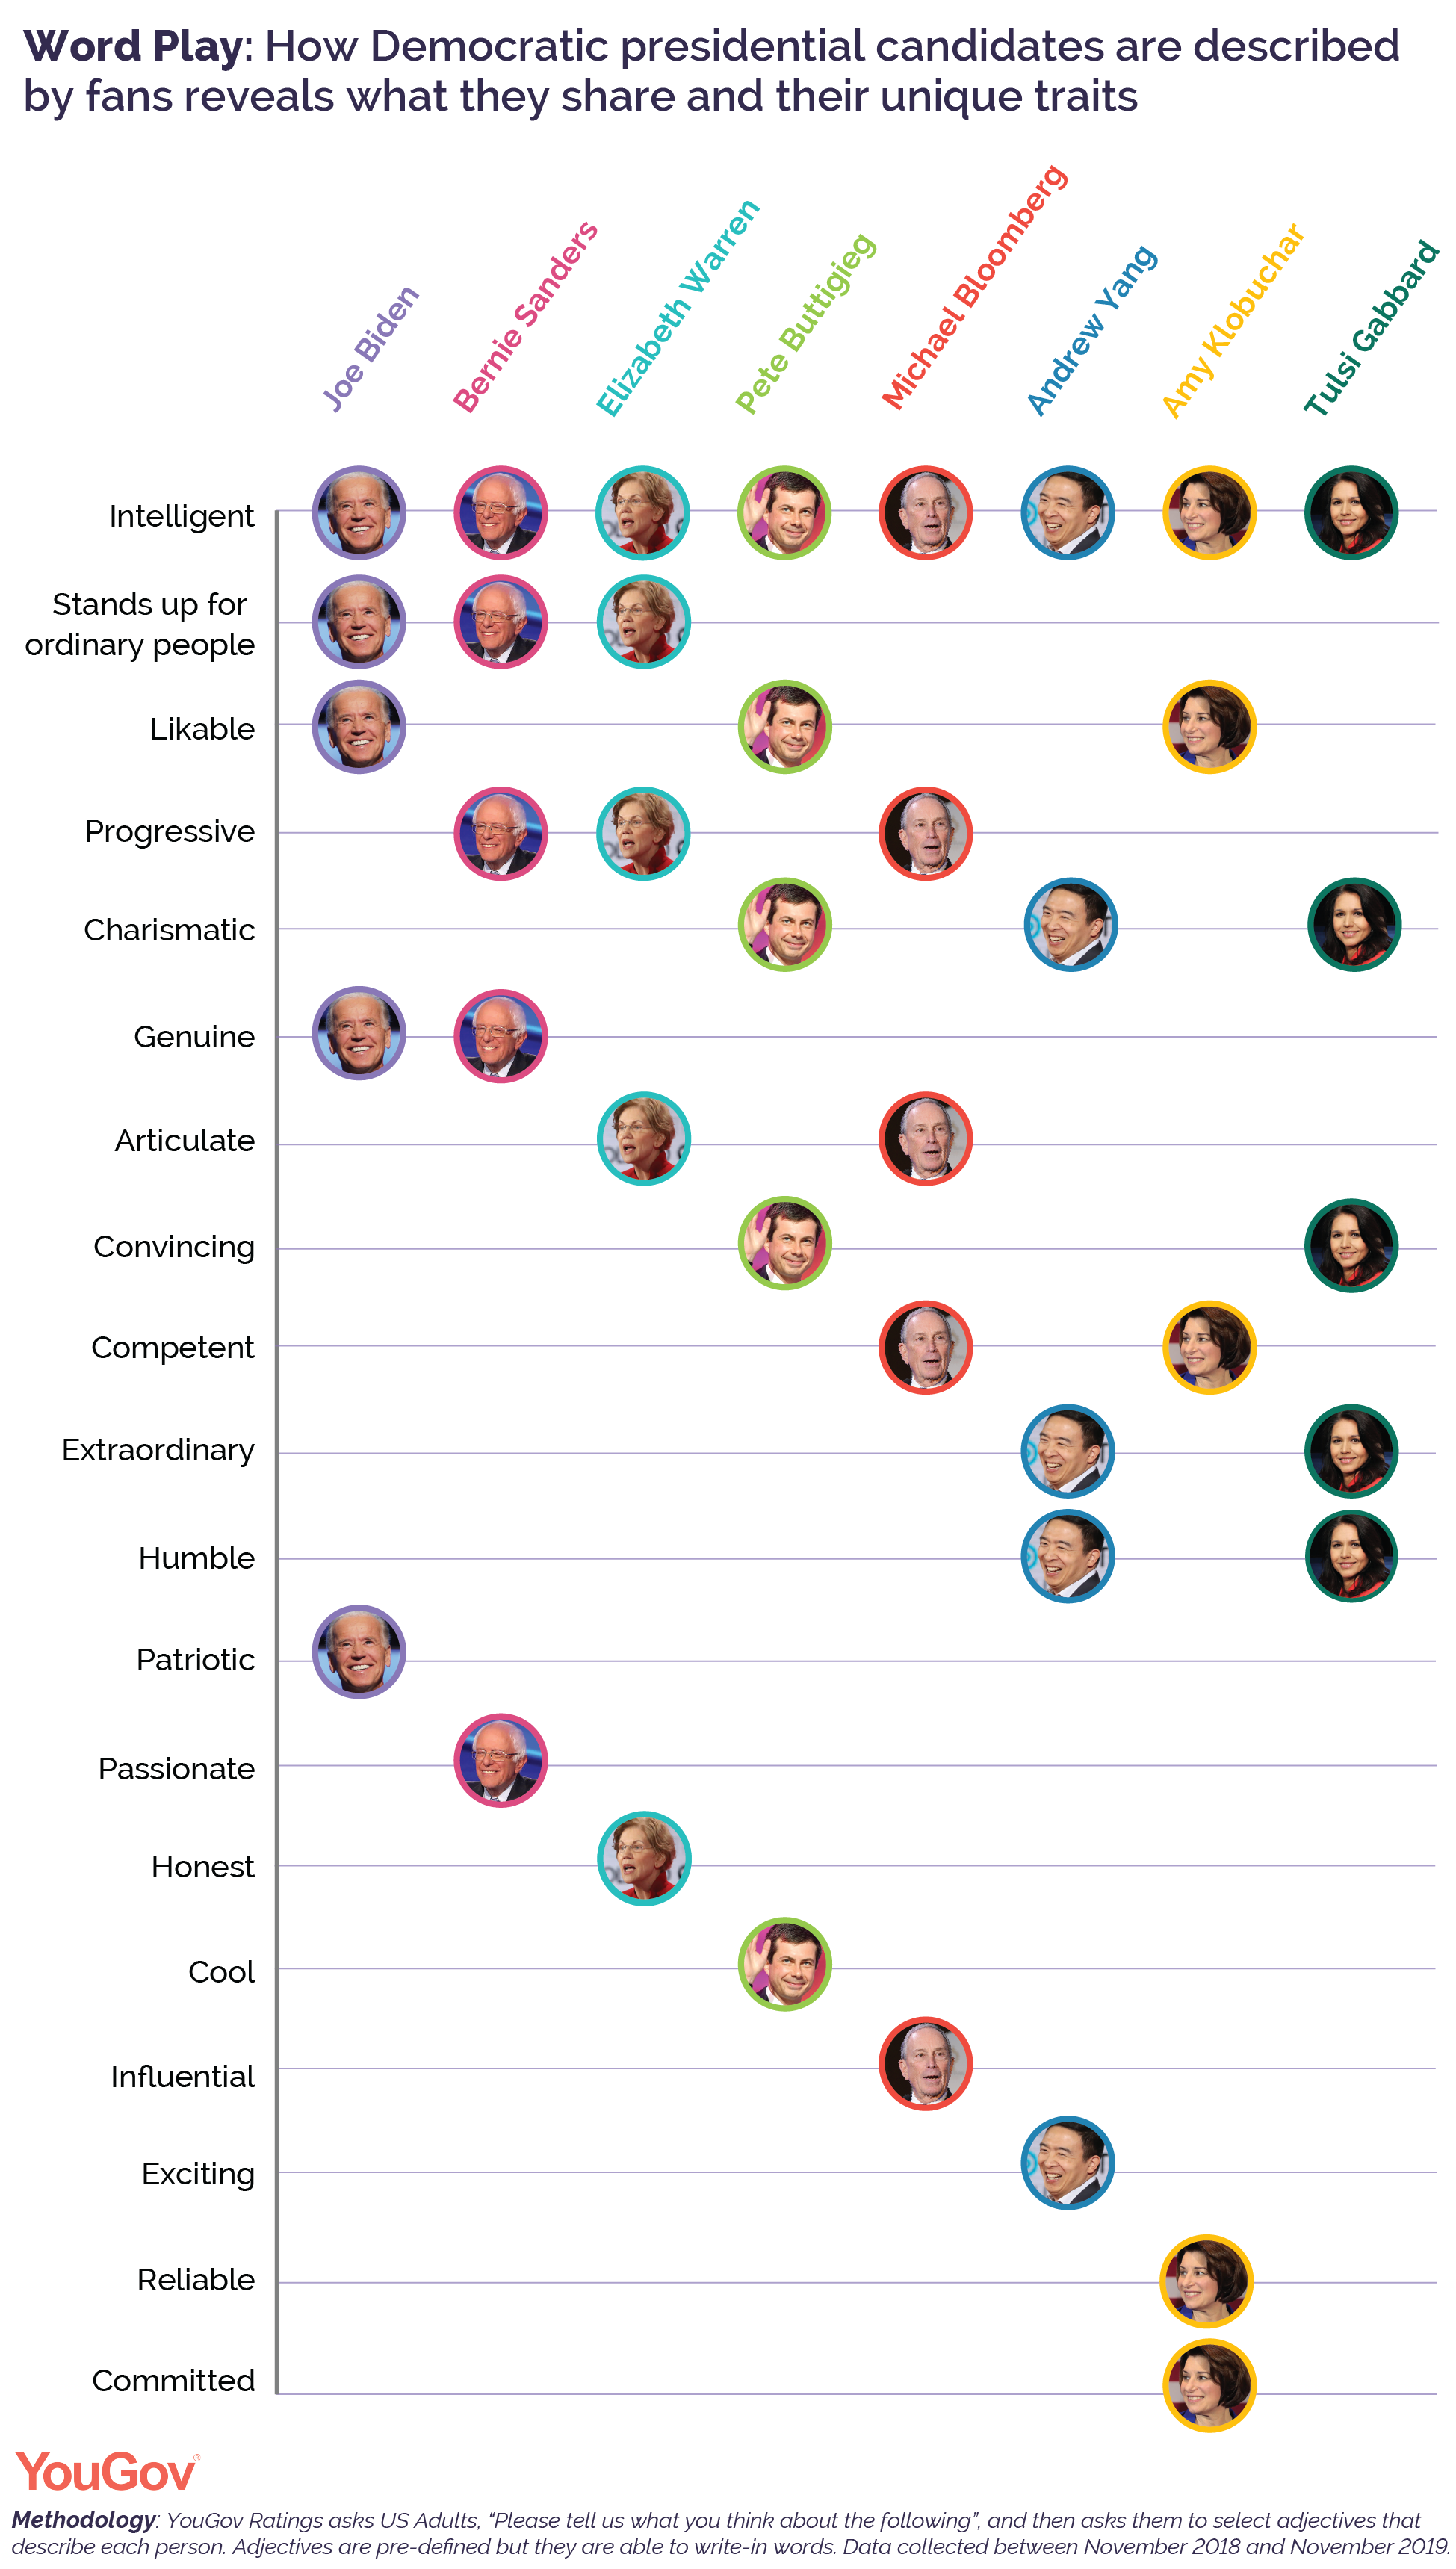 How Democratic presidential candidates are described by fans reveals what they share and their unique traits